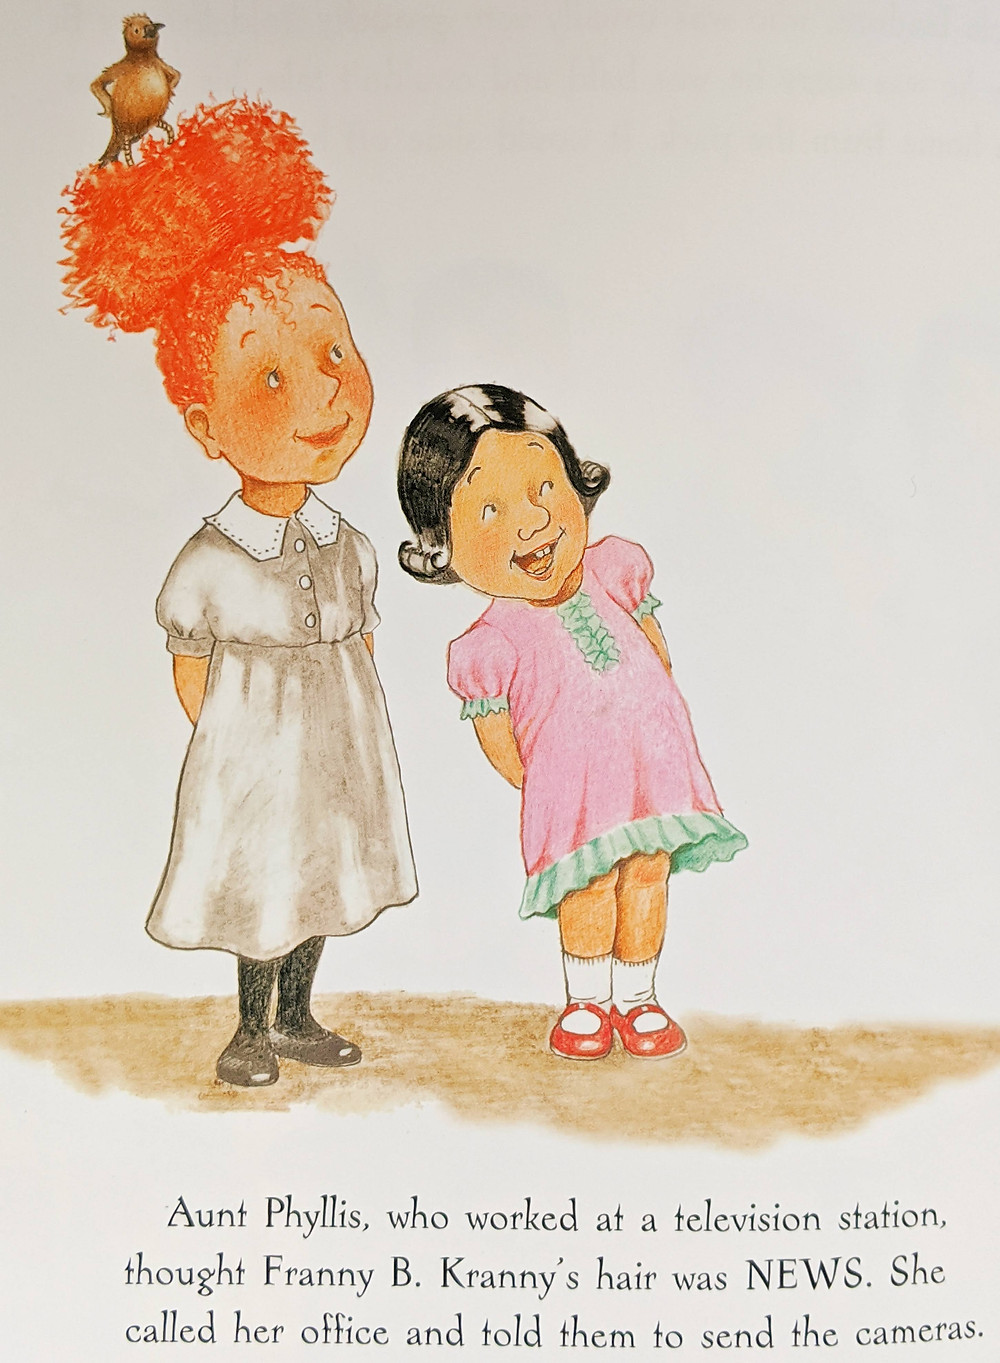 Franny B. Kranny There's A Bird in Your Hair illustration has Franny with bird in her bun with her sister standing next to her